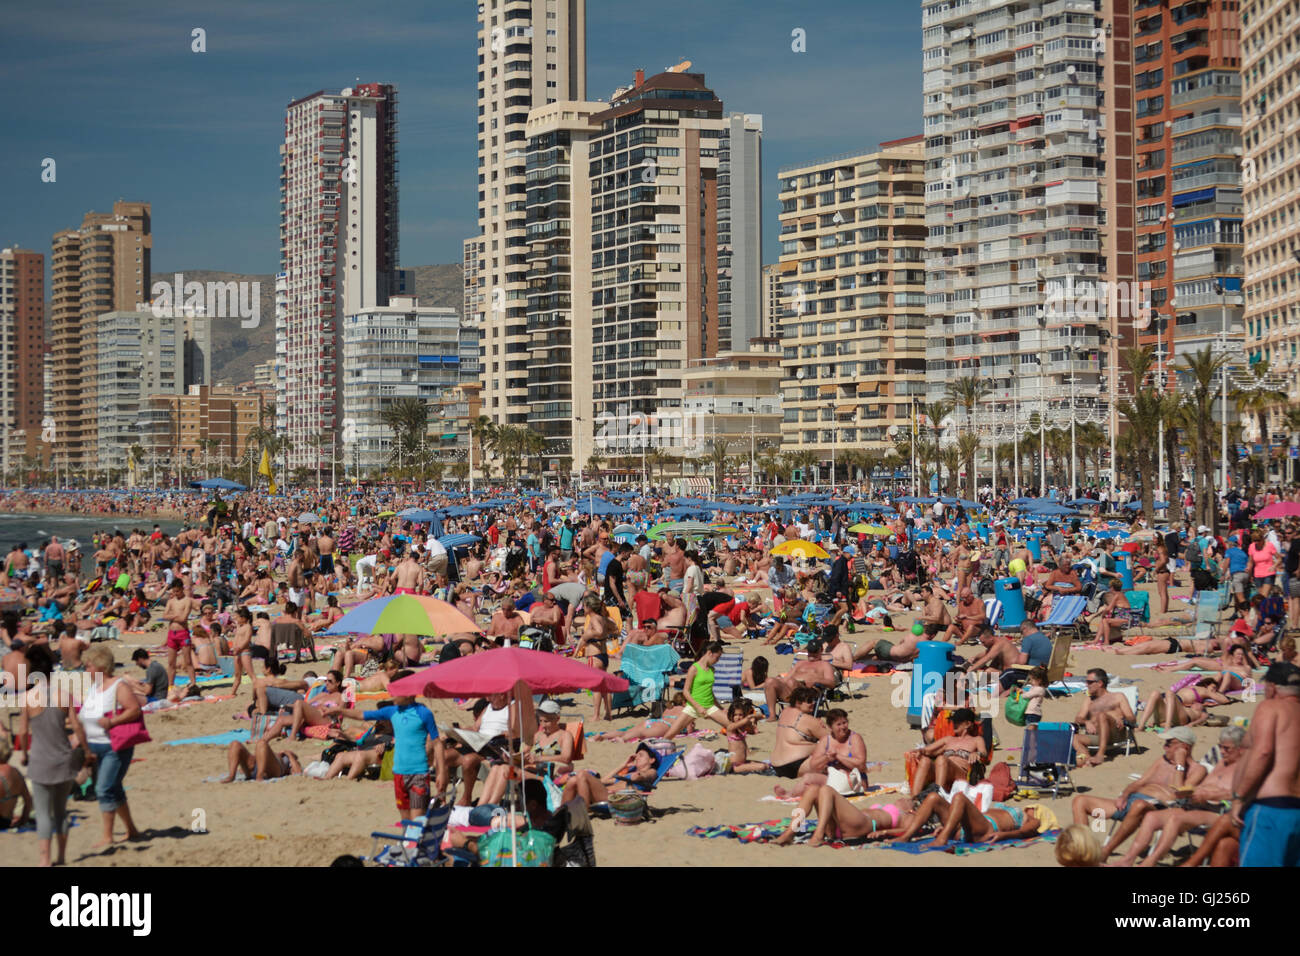 Spain, Benidorm, crowds sunbathing in Levante beach with high-rise buildings in the background - Stock Image